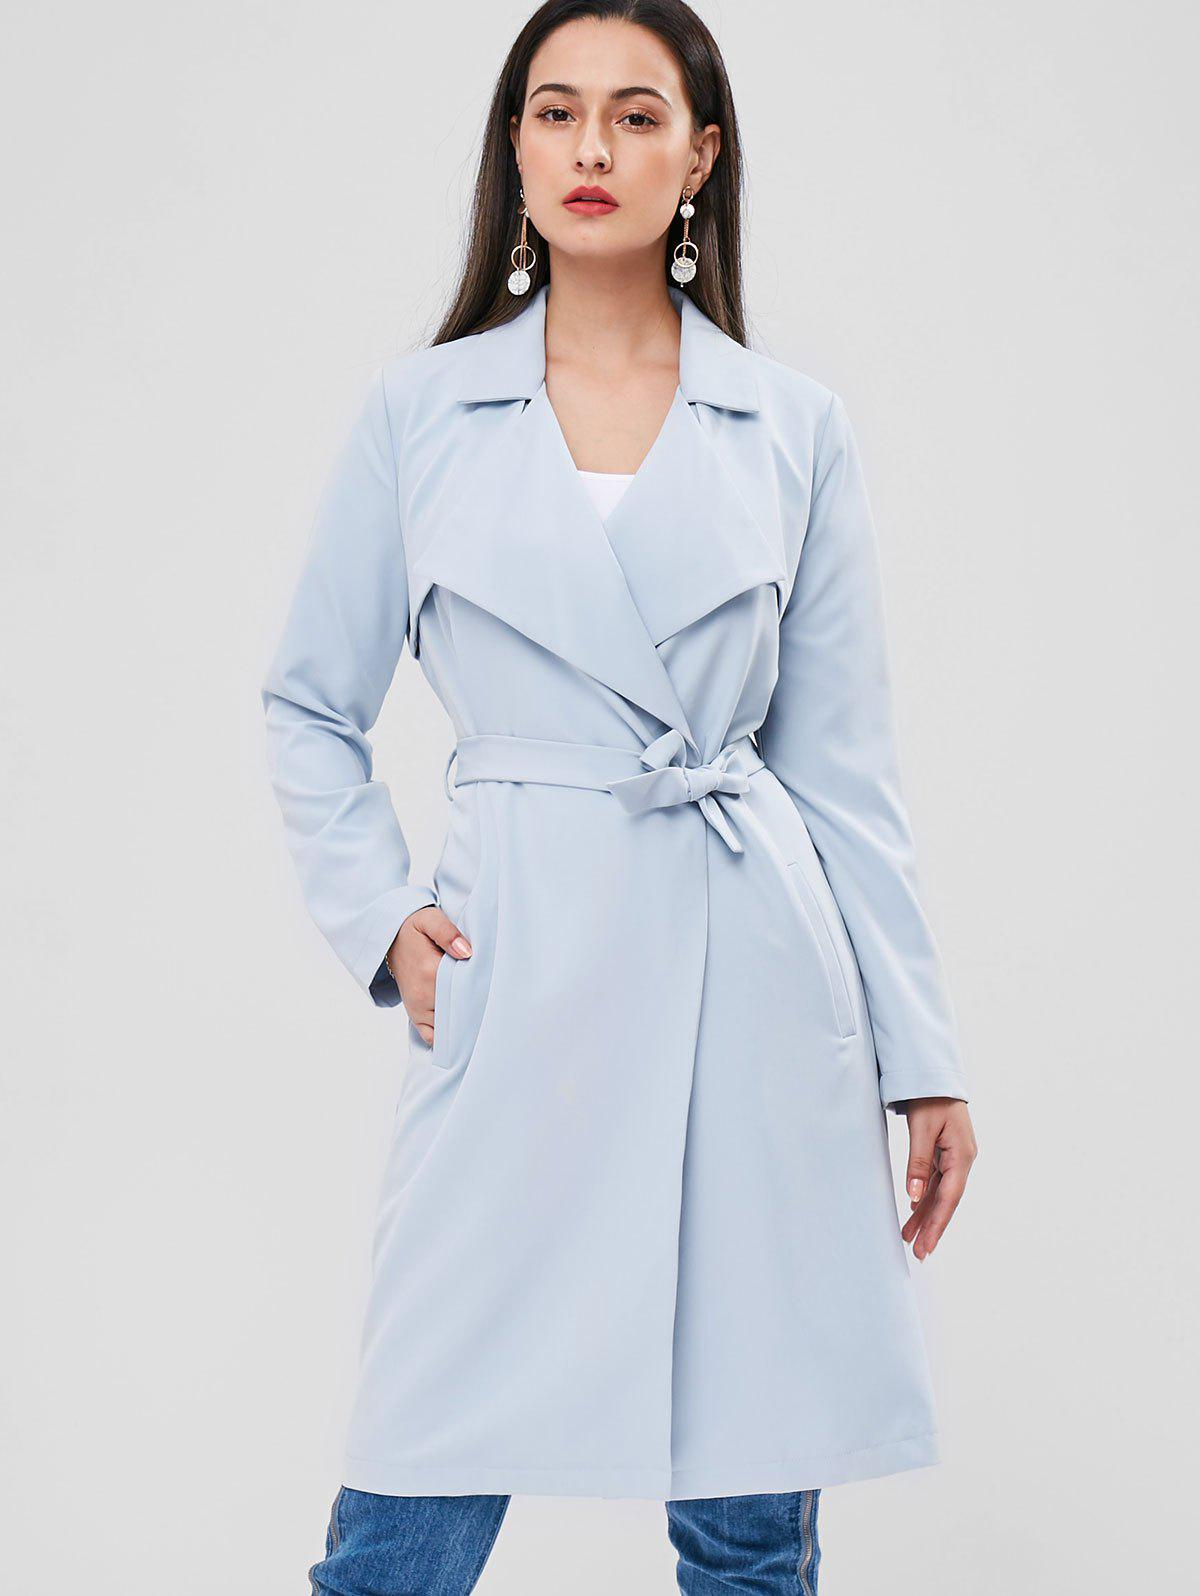 Poches Avant Ouvertes Belted Trench Coat